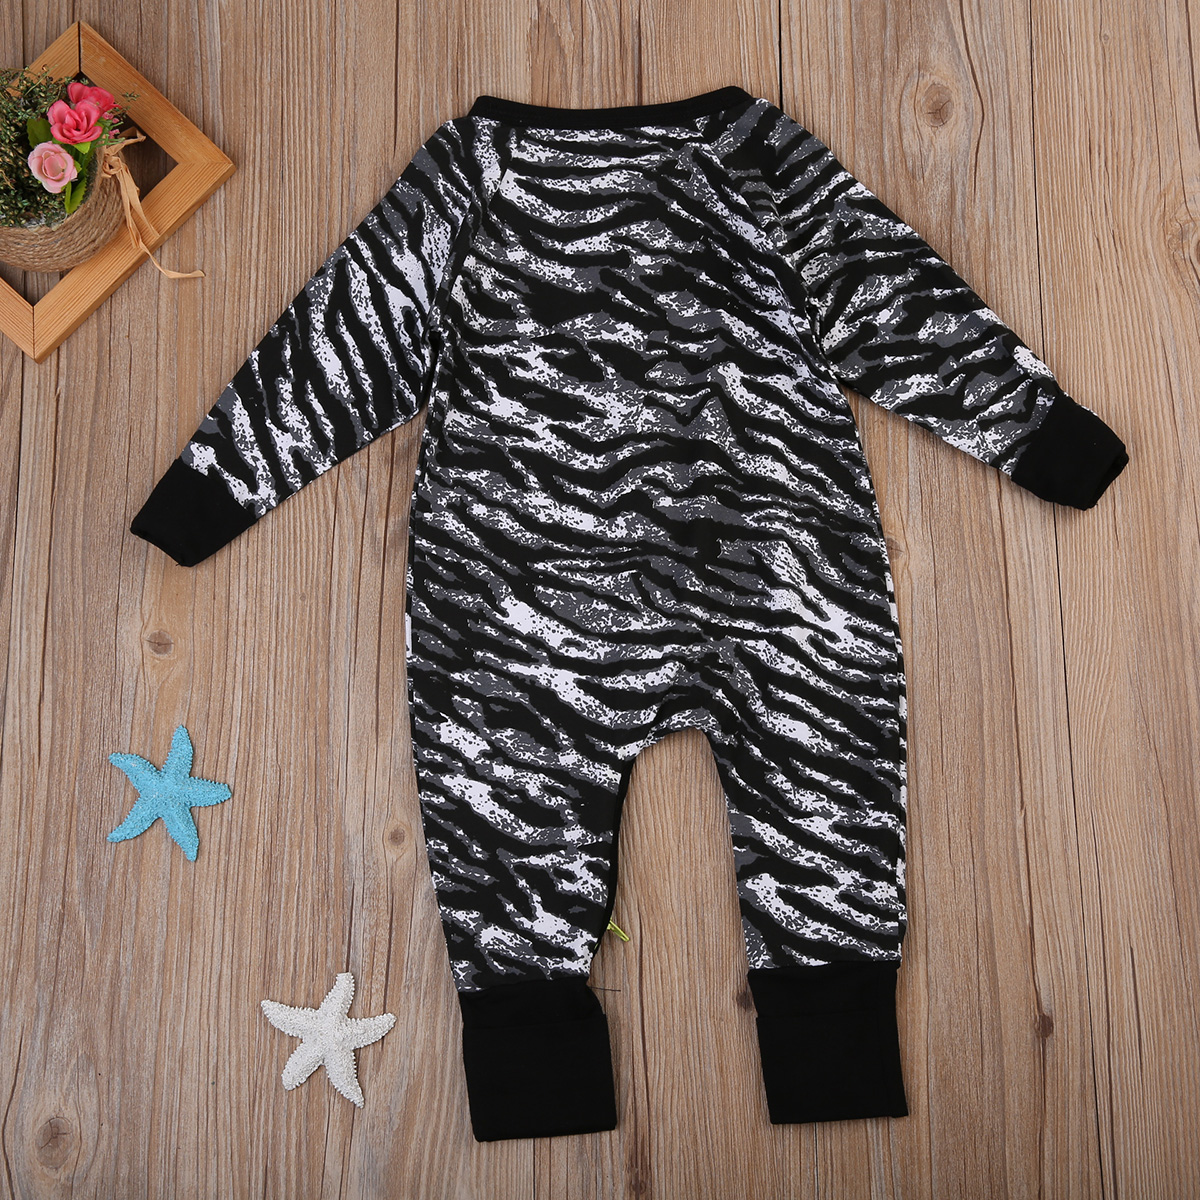 Fashion Newborn Baby Boys Cotton One-Piece Leopard Print Long Sleeve Romper Clothes Jumper Kids Playsuit Clothing Outfits 0-2Y